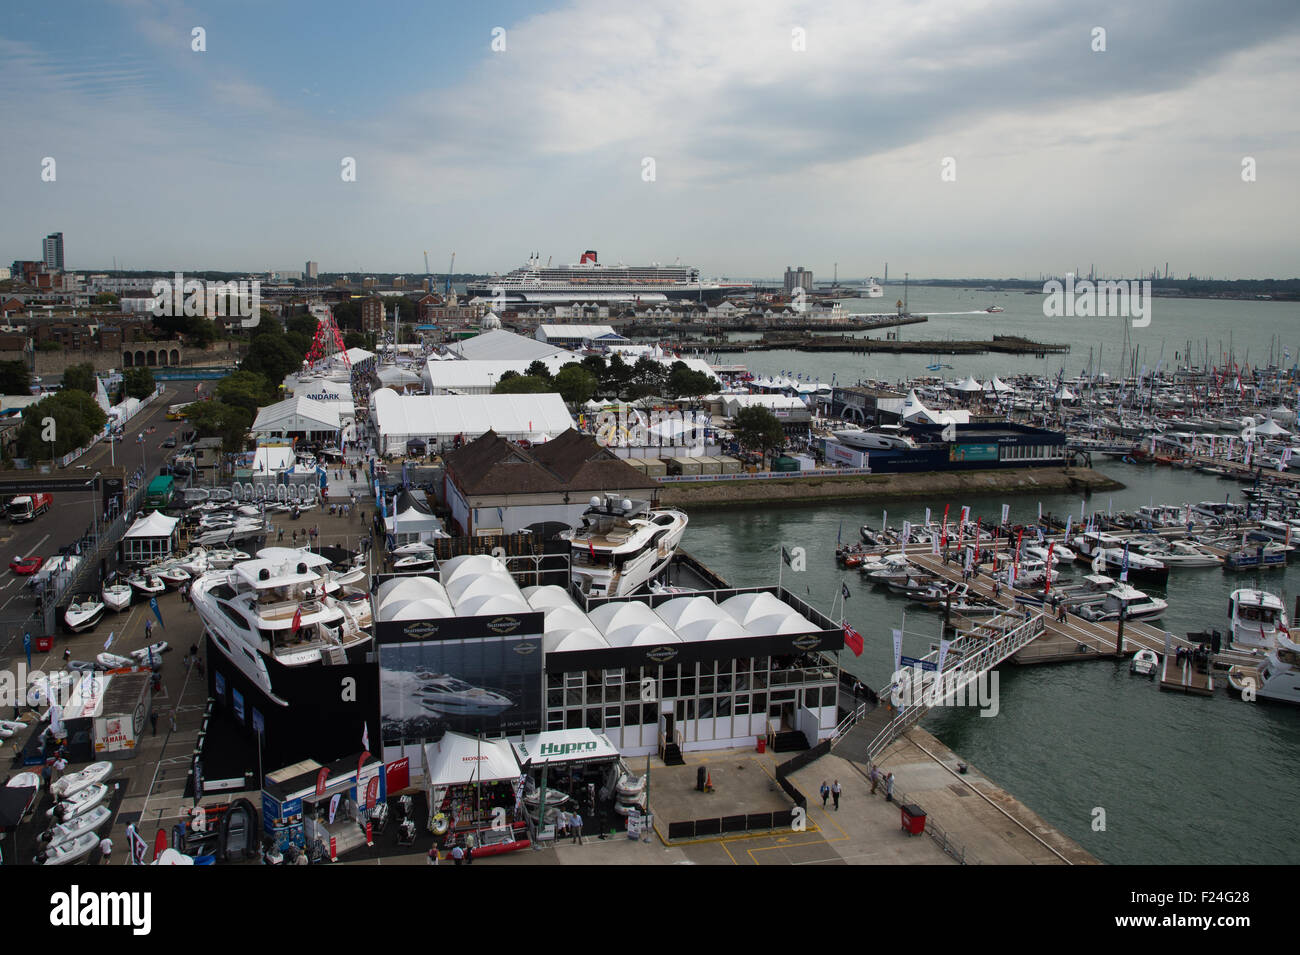 Southampton, UK. 11th September 2015. Southampton Boat Show 2015. A general view of the boat show exhibition area Stock Photo